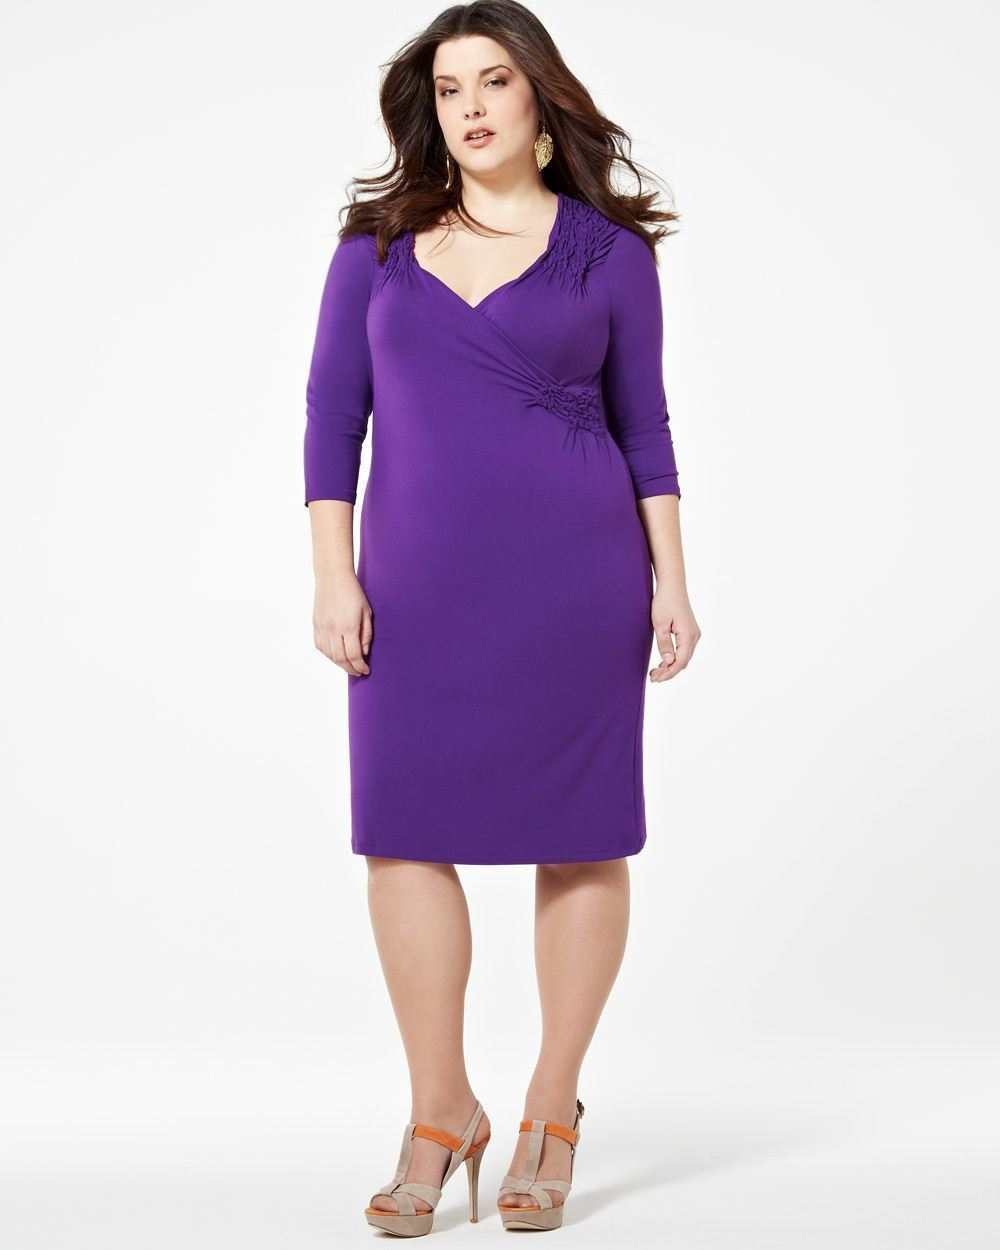 Primary image for 1X Addition Elle Royal Purple Long Sleeve Wrap Look Dress Plus Size NWT 79.99